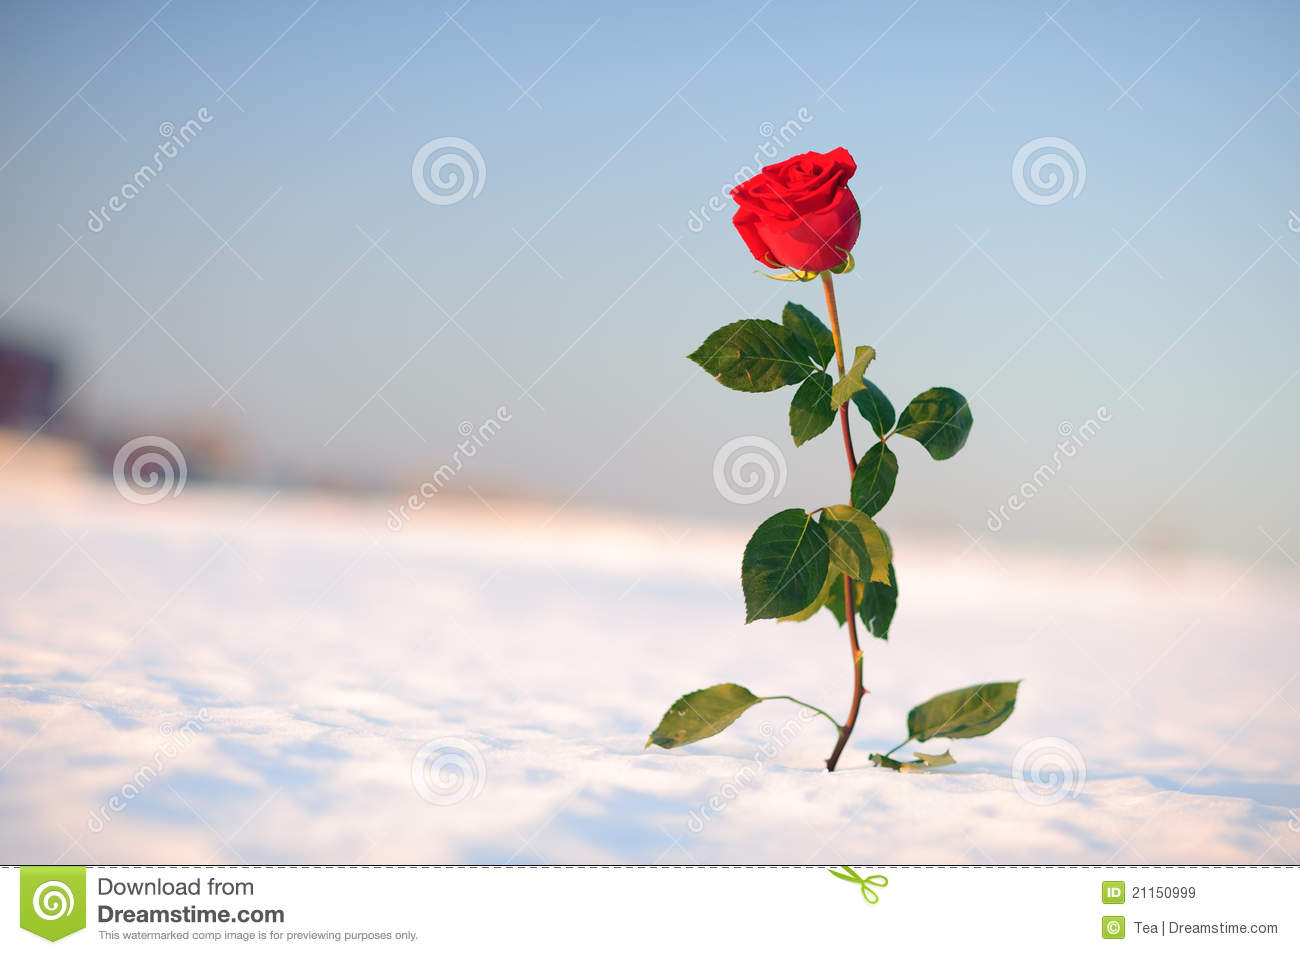 Red Rose Royalty Free Stock Images - Image: 21150999